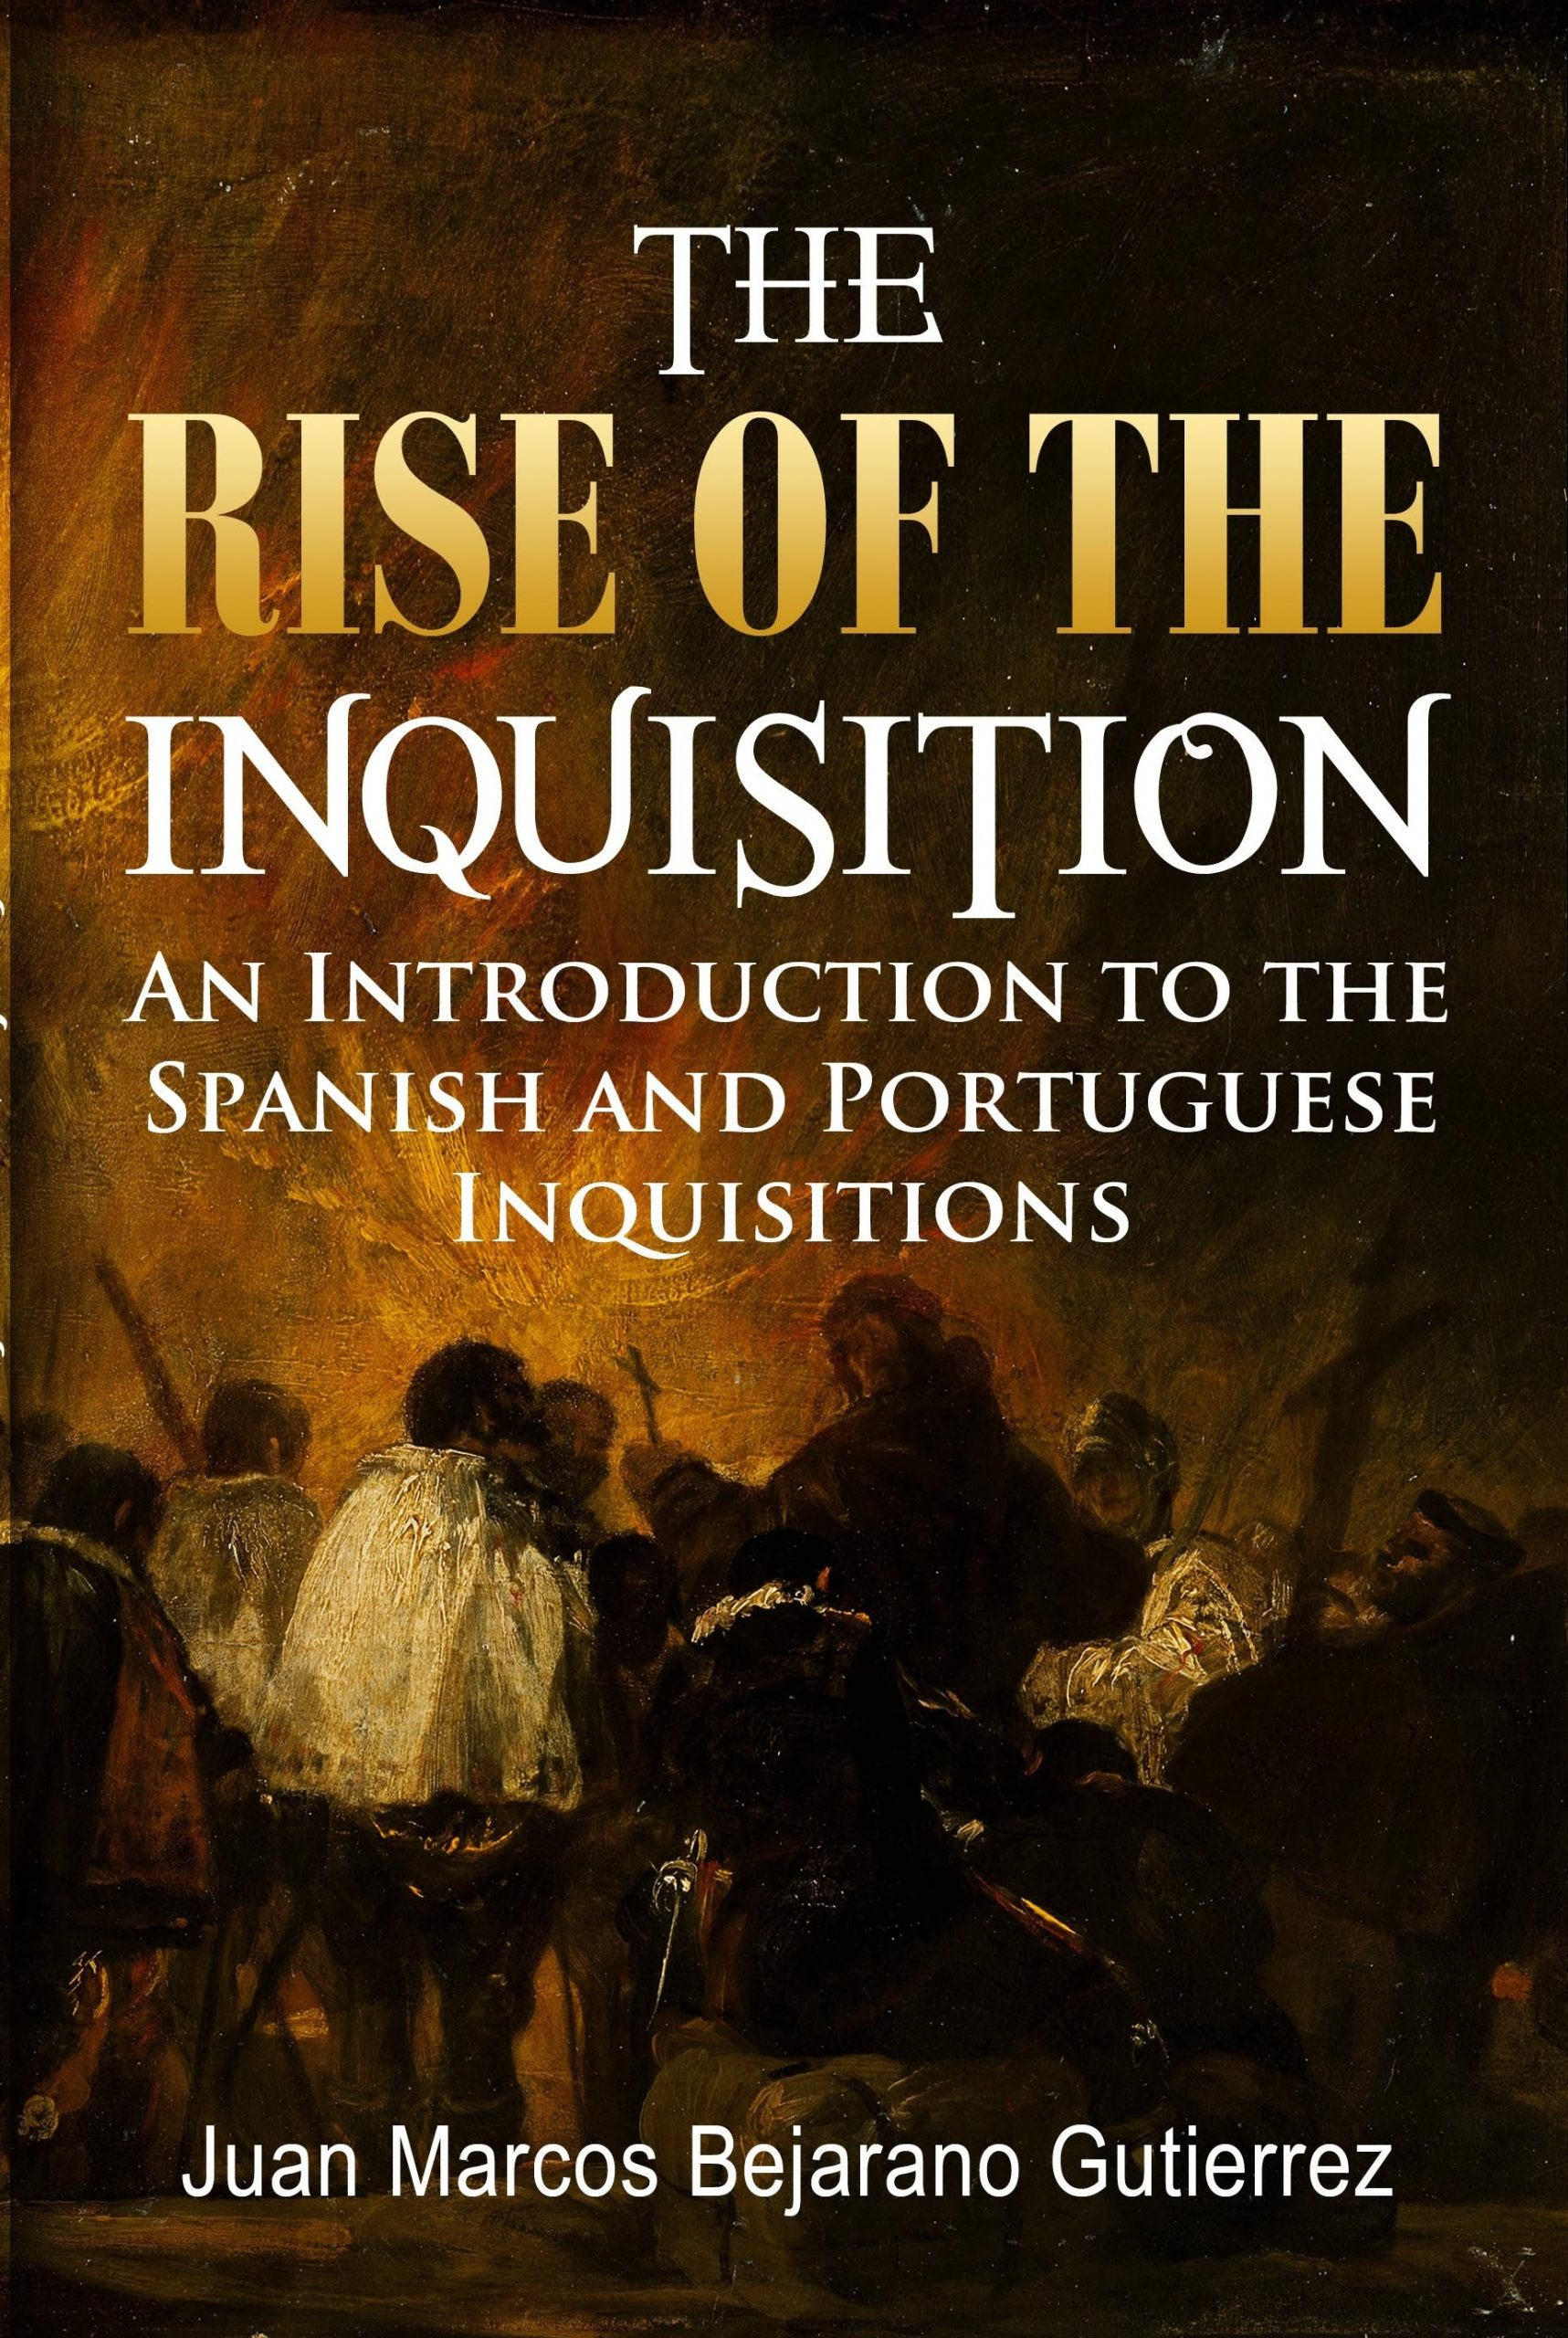 The Rise of the Inquisition